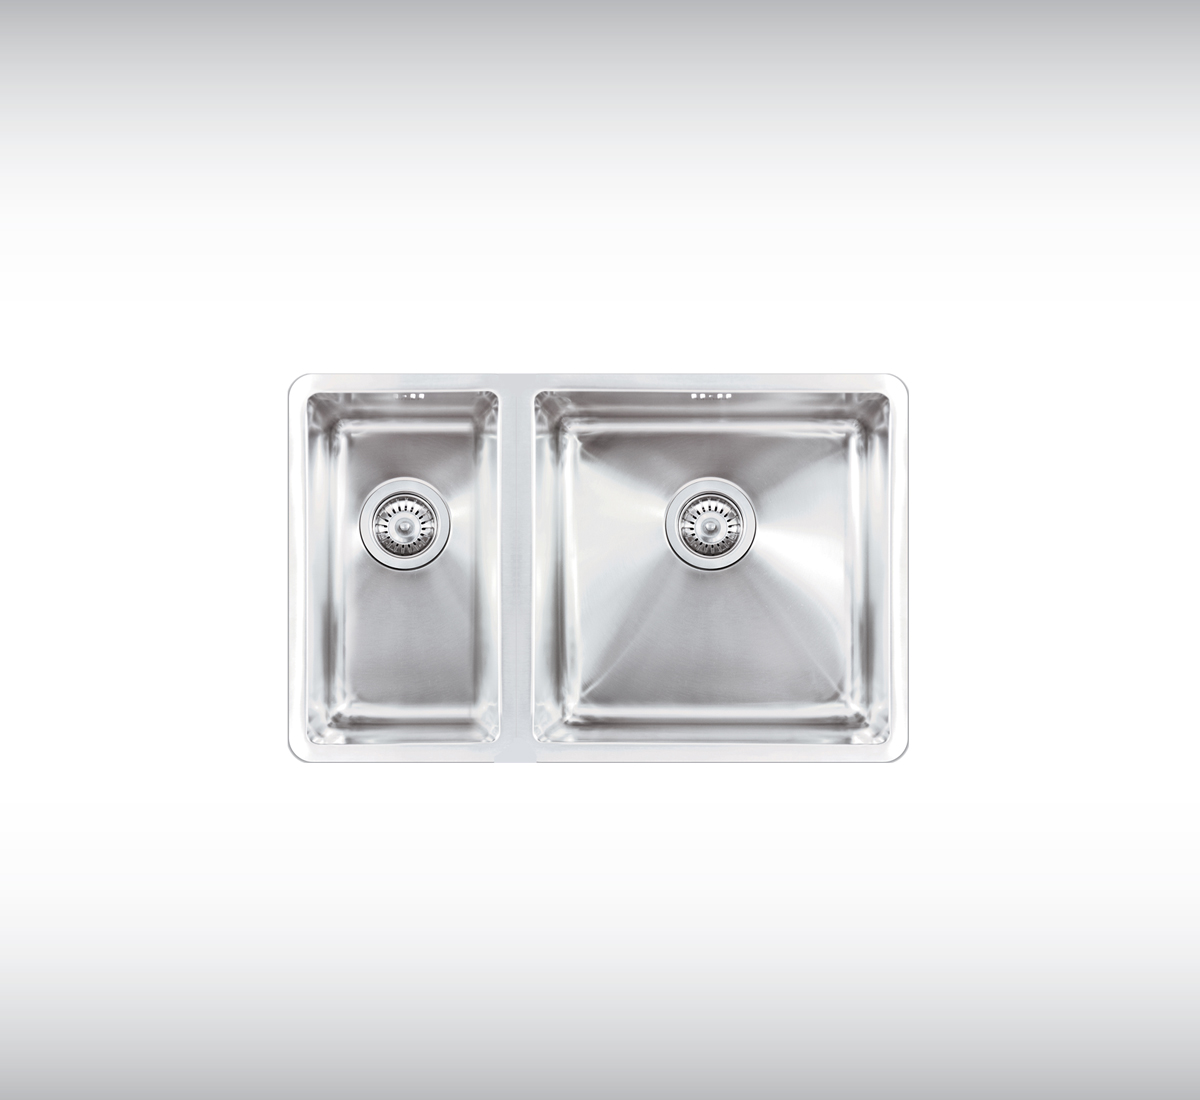 Stainless Steel Sink GINO-615R